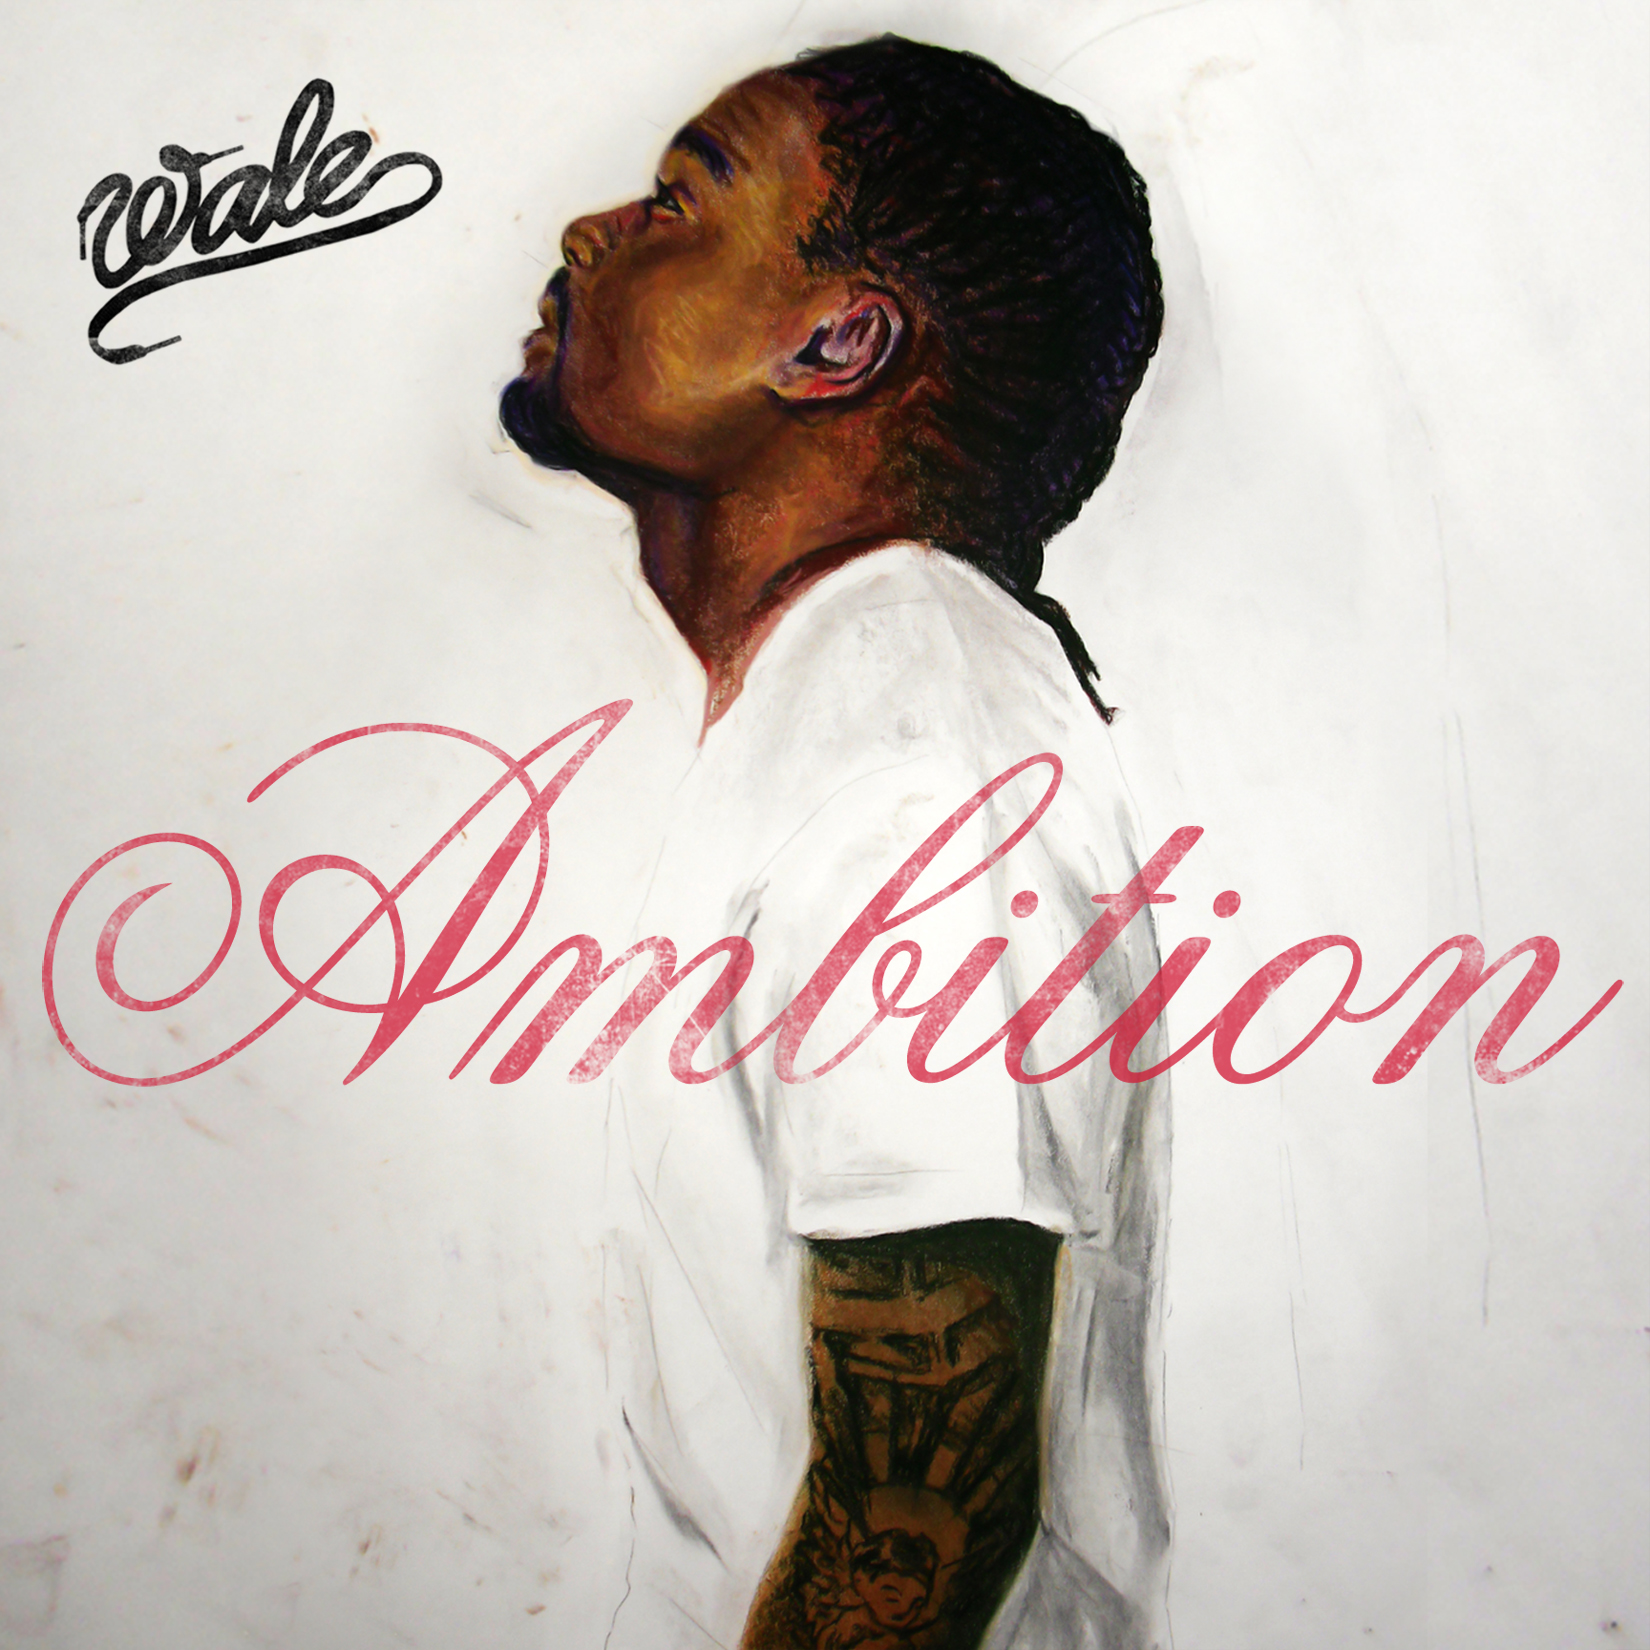 Much of Wale's popularity comes from free music he releases online.